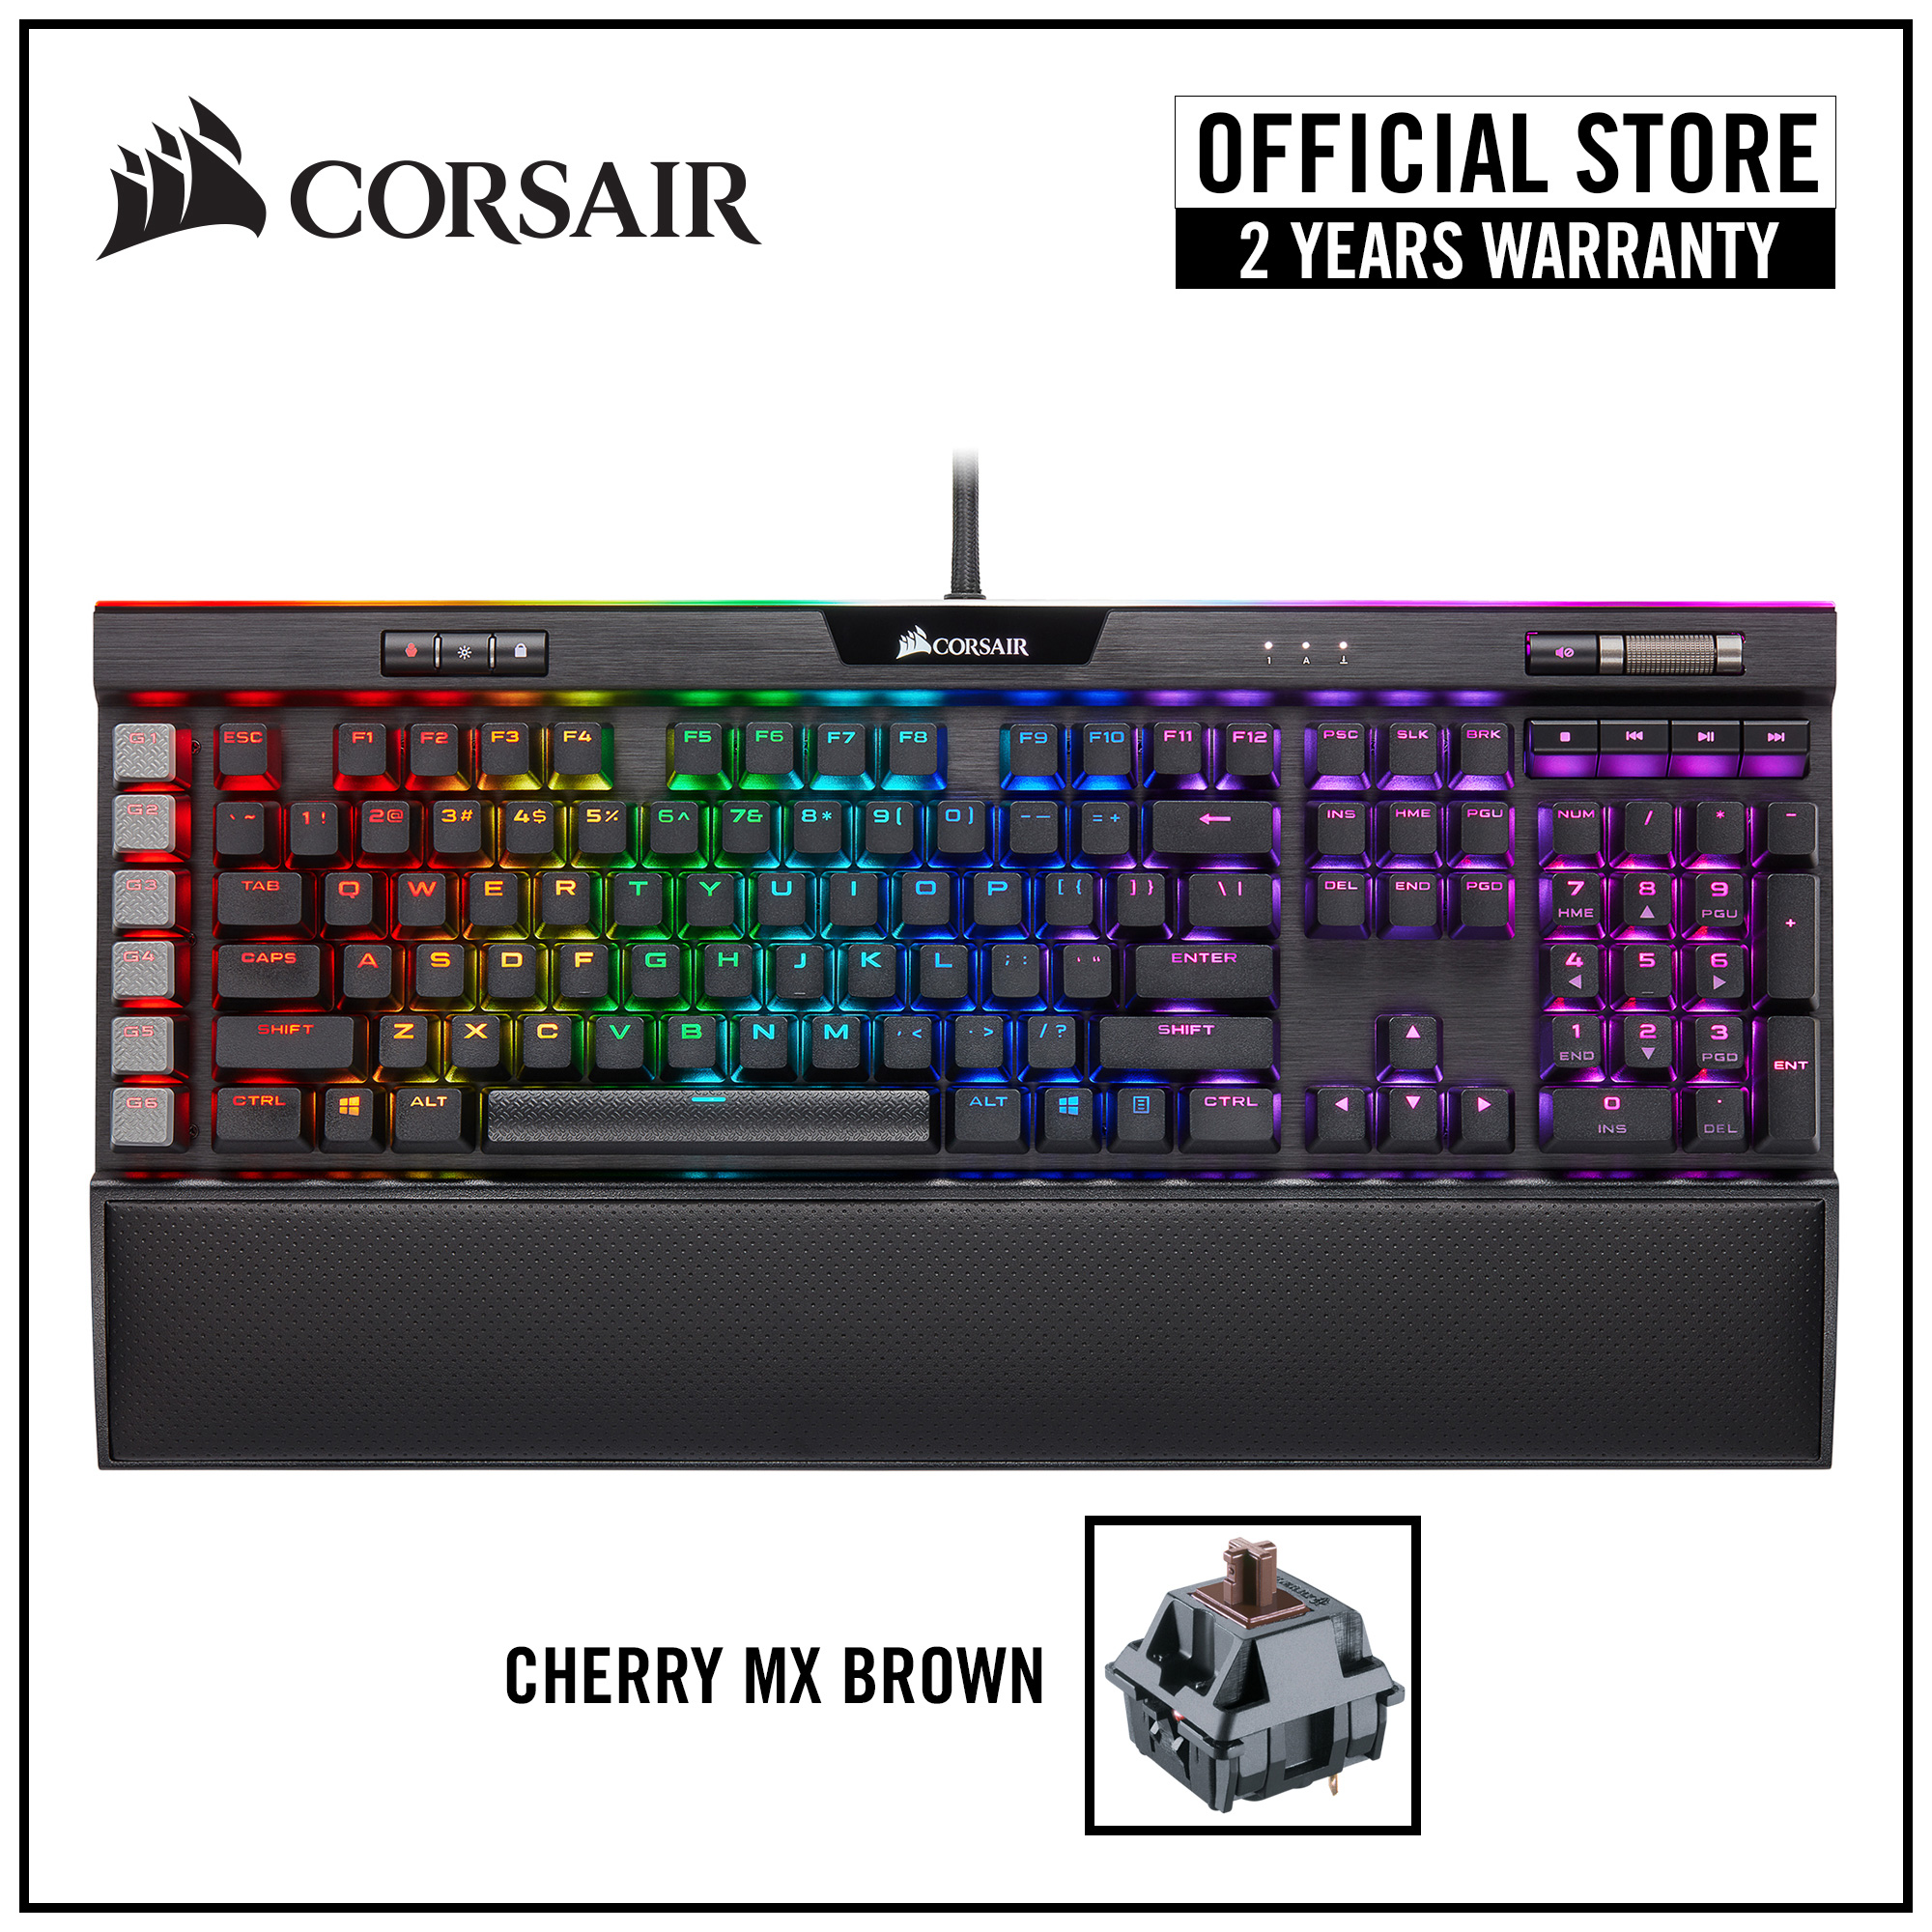 [NEW] CORSAIR K95 RGB PLATINUM XT Mechanical Gaming Keyboard (Black) — Cherry MX Brown RGB Singapore